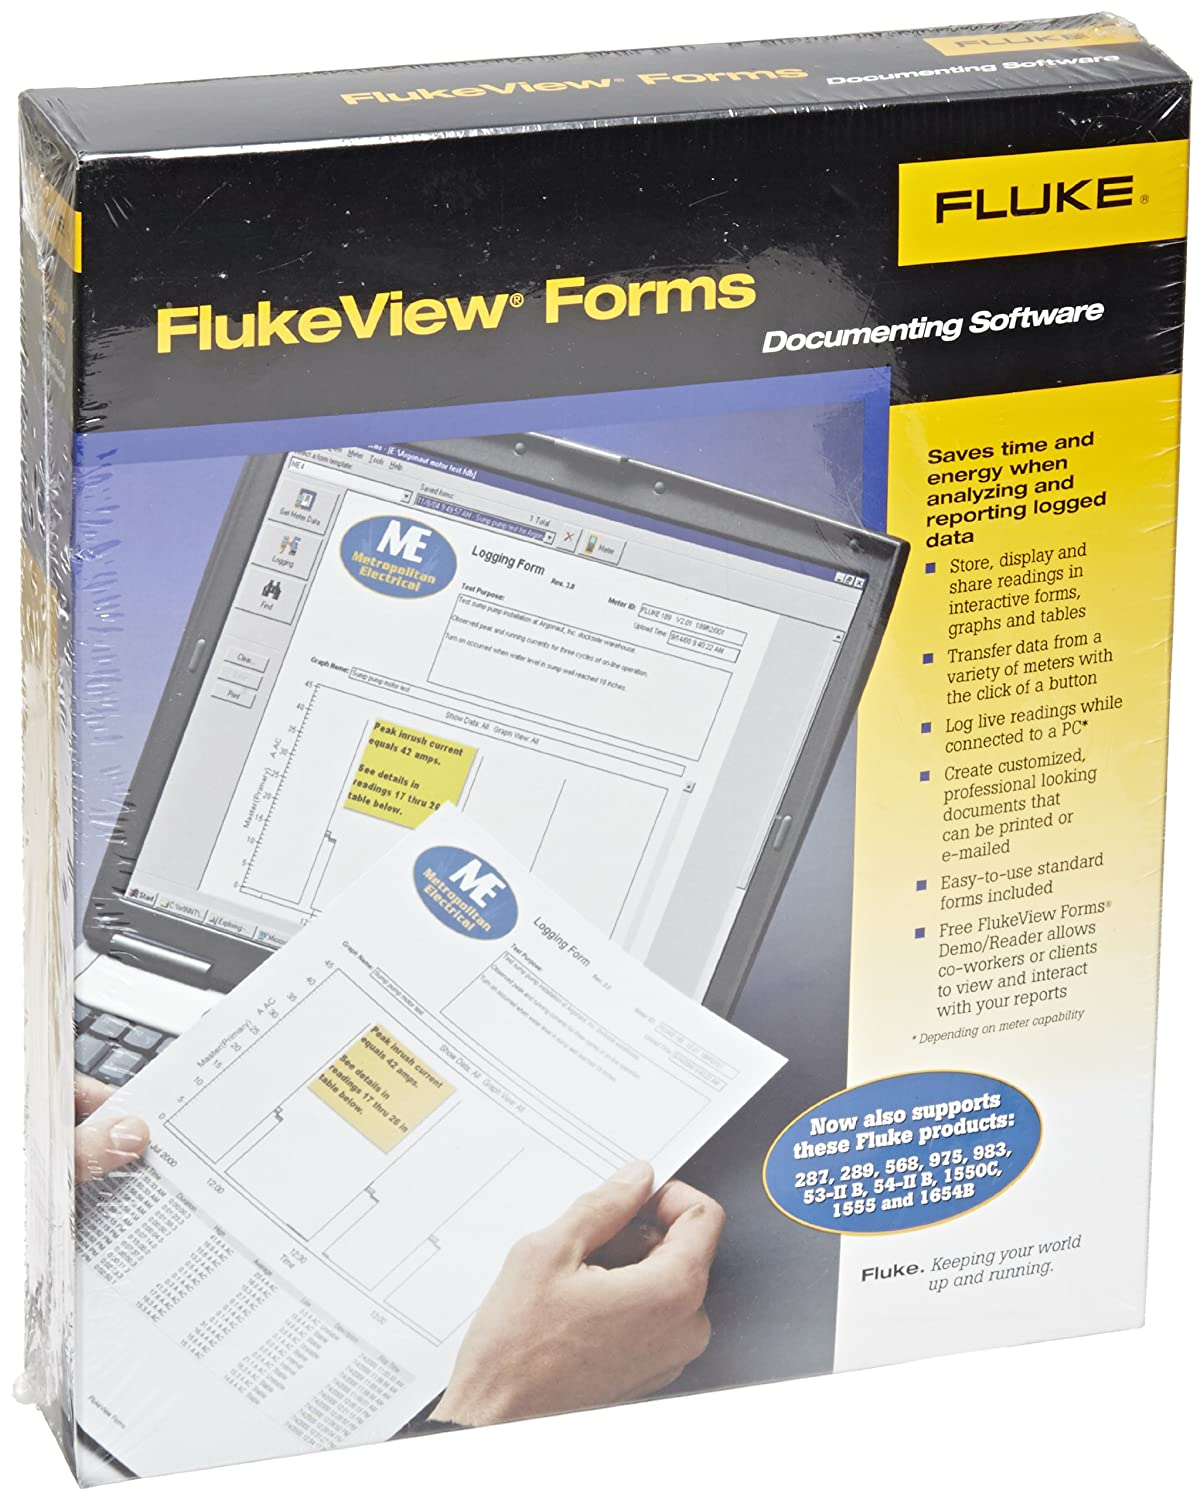 flukeview forms 3.0